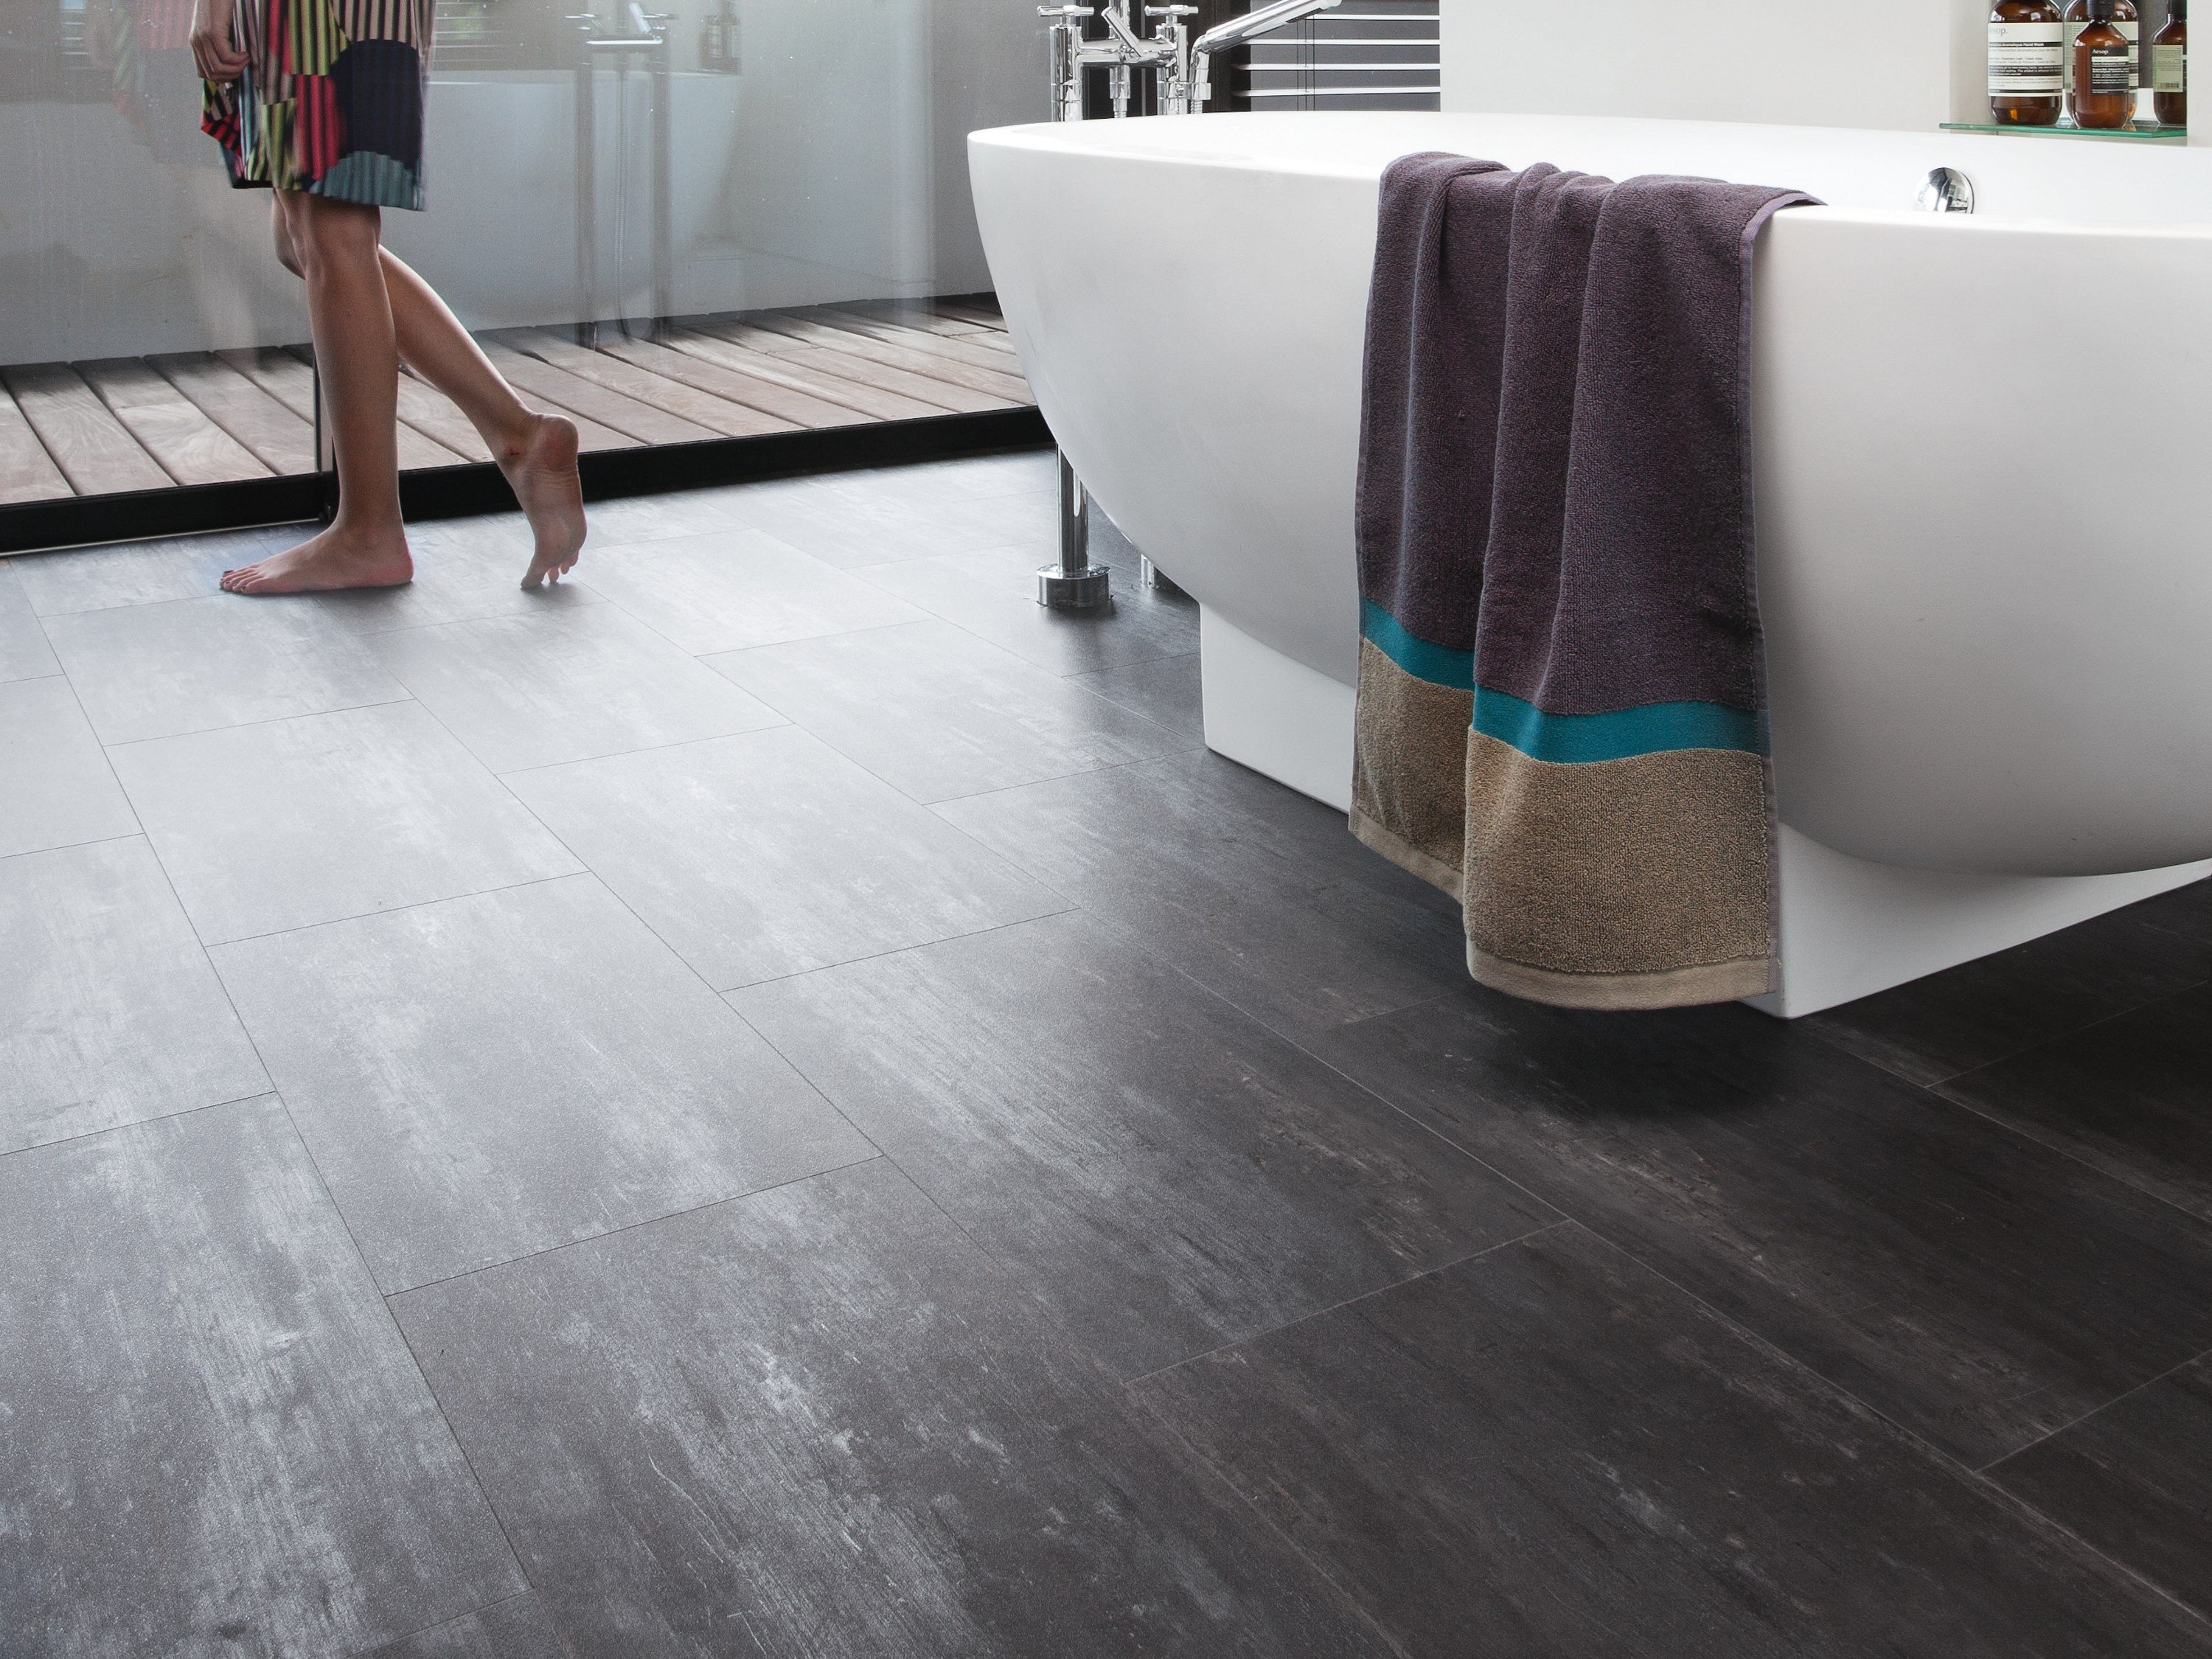 Synthetic material floor tiles senso urban by gerflor - Vloeren vinyl cement tegel ...